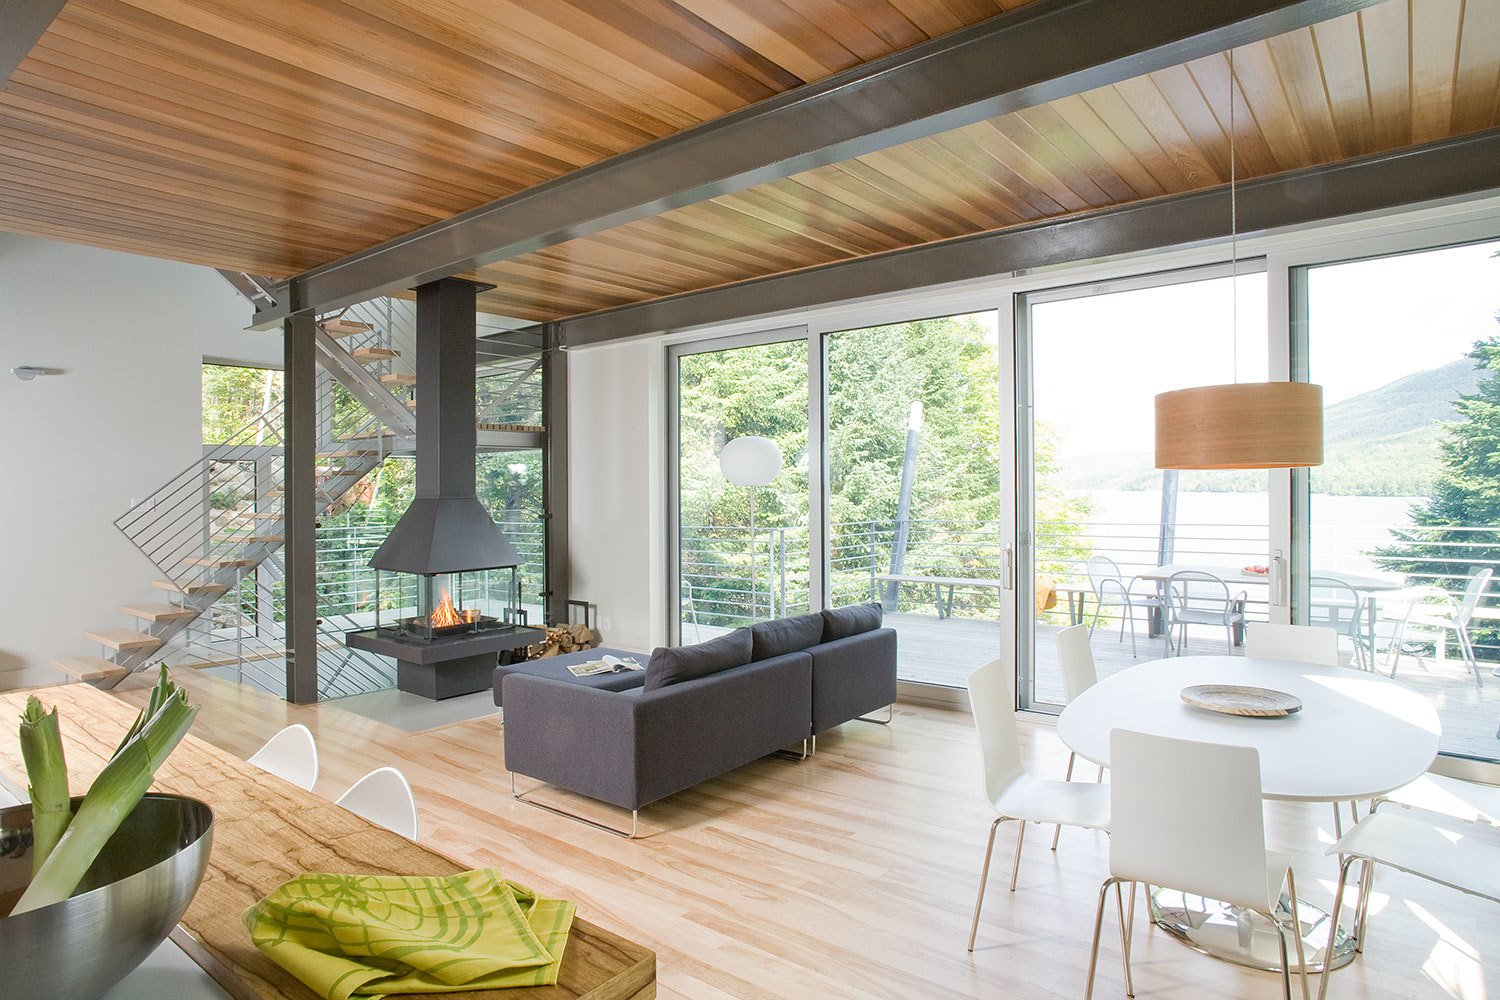 7 Incredible Modern Homes By Canadian Architect Paul Bernier   Photo 7 Of 7    Located